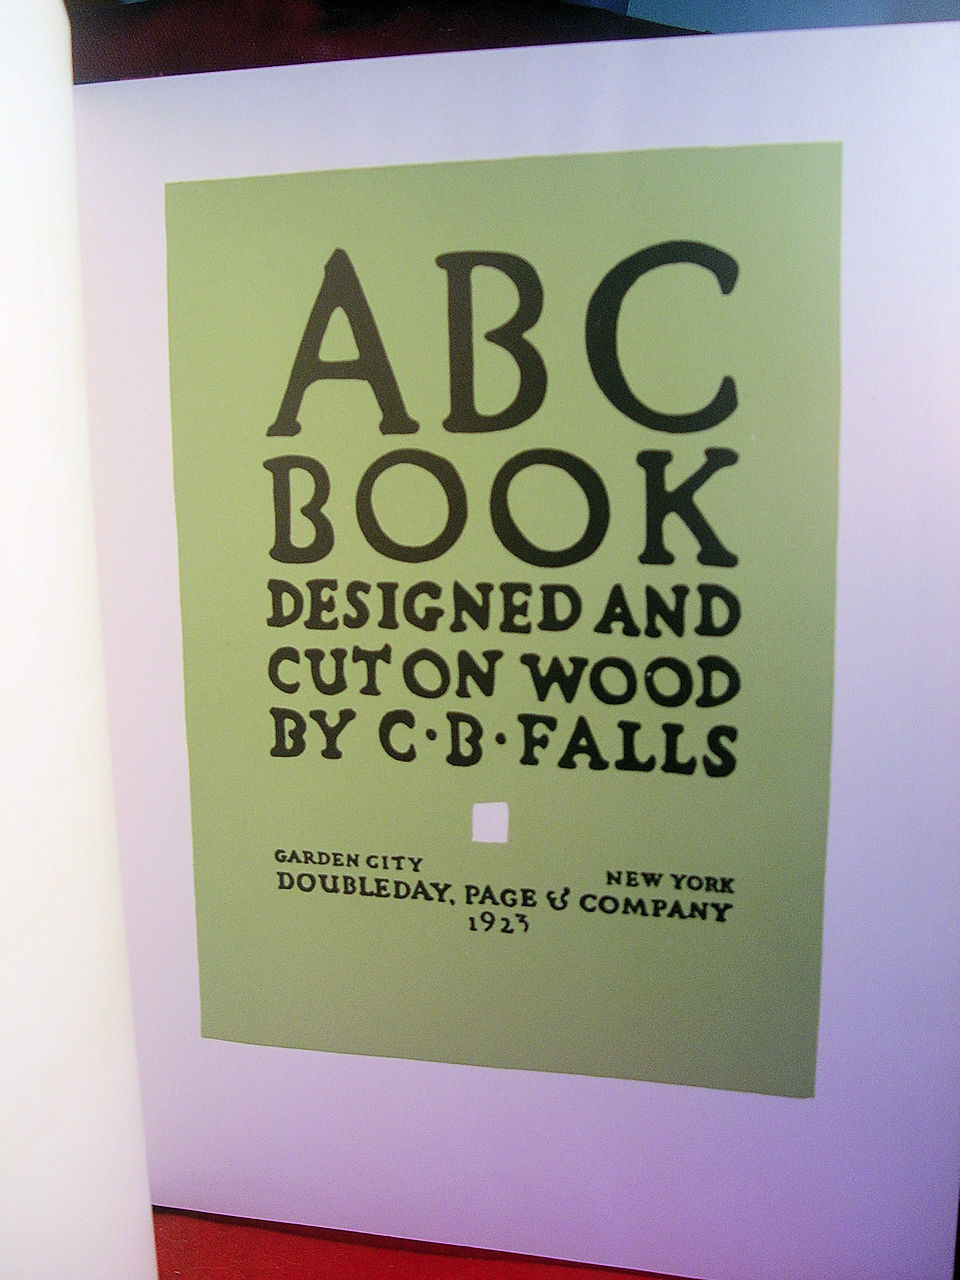 ABC Book by C. B. Falls 1923 first edition in original dust jacket.